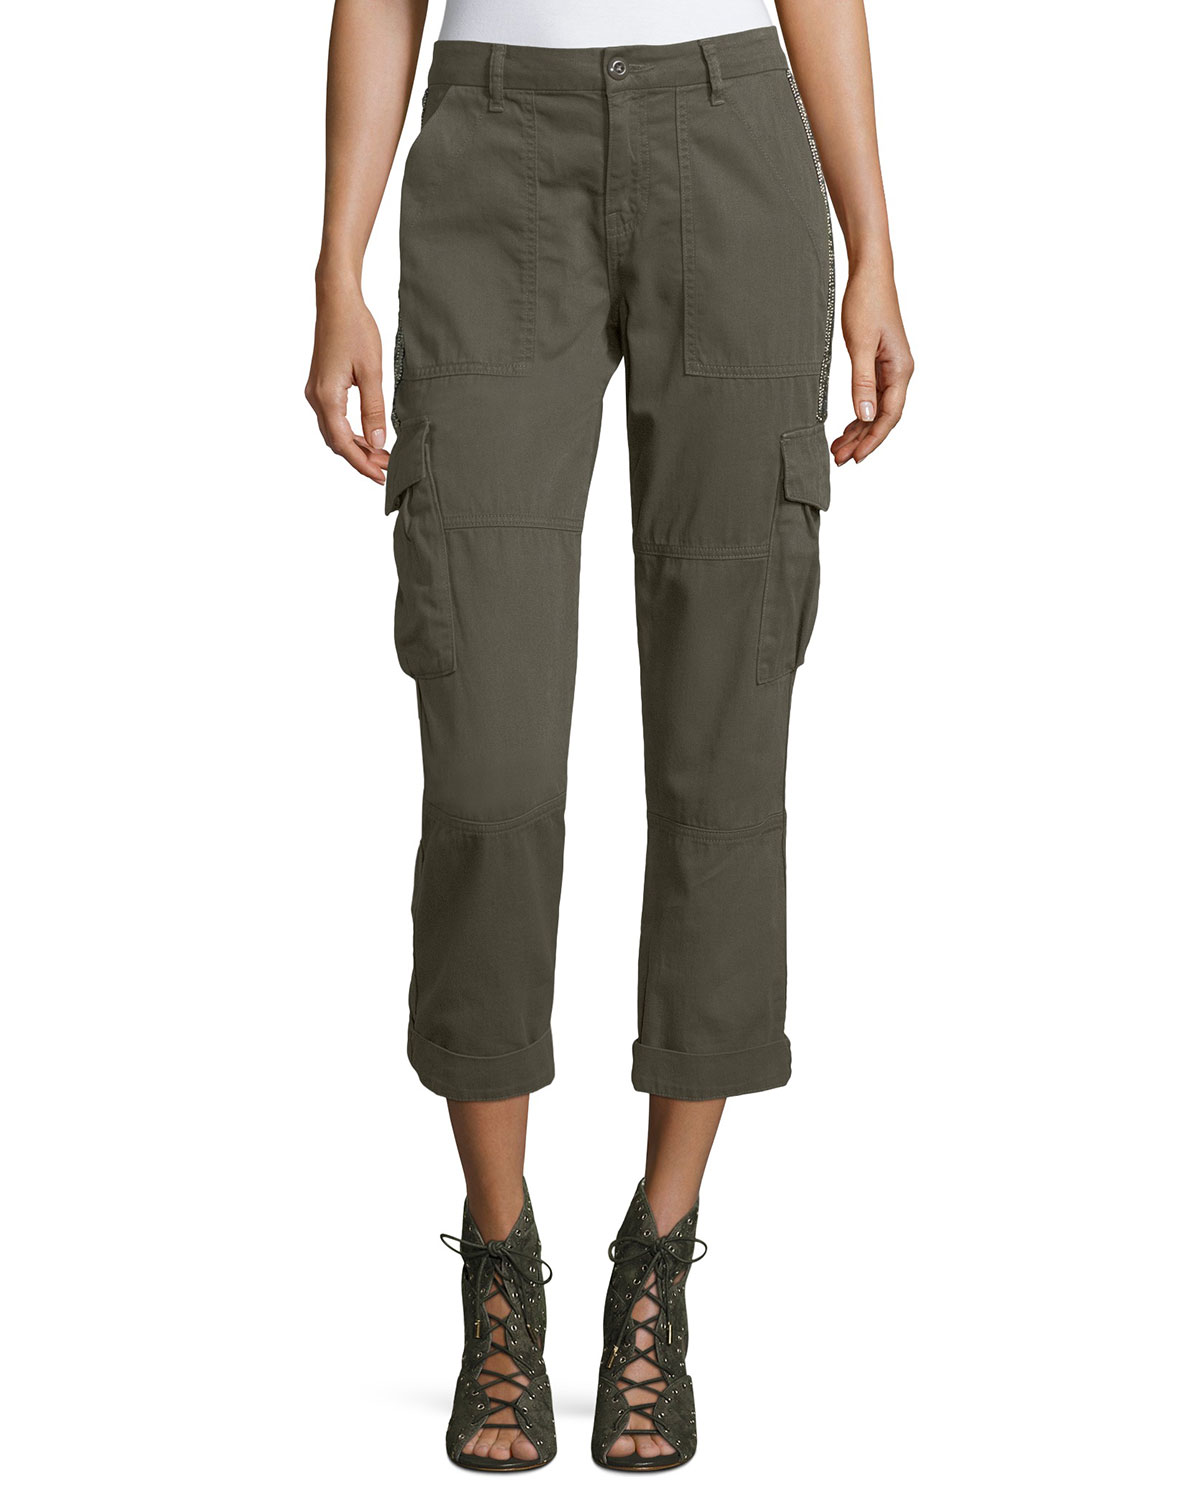 Cargo trousers Smooth fit olive Brunello Cucinelli Outlet Purchase qyaqDRMRy